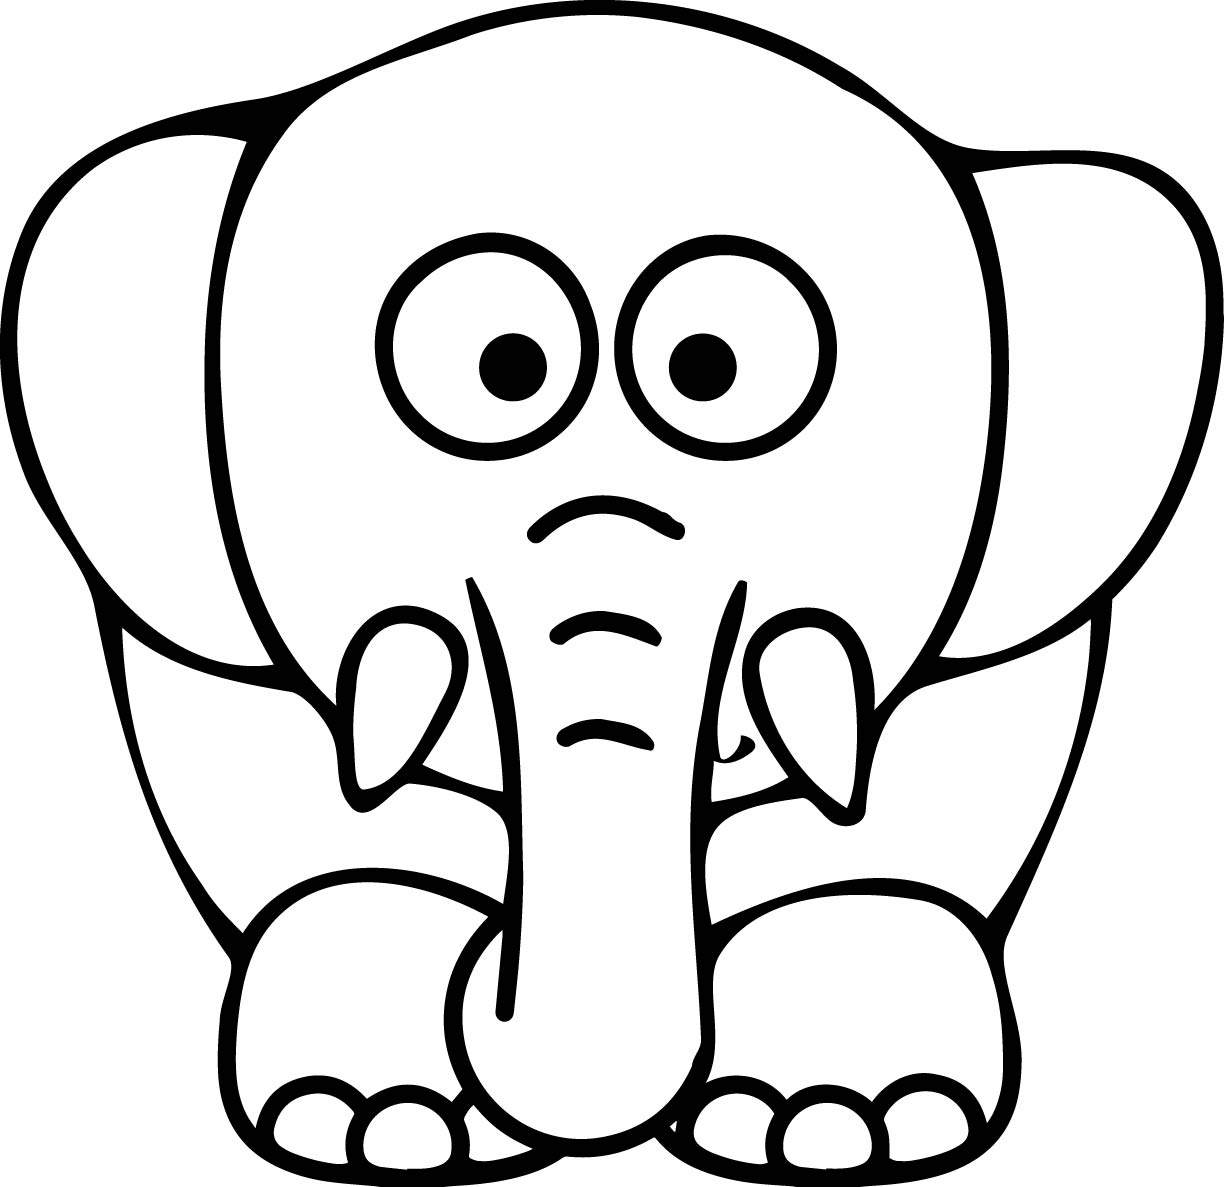 coloring pictures elephant print download teaching kids through elephant coloring elephant coloring pictures